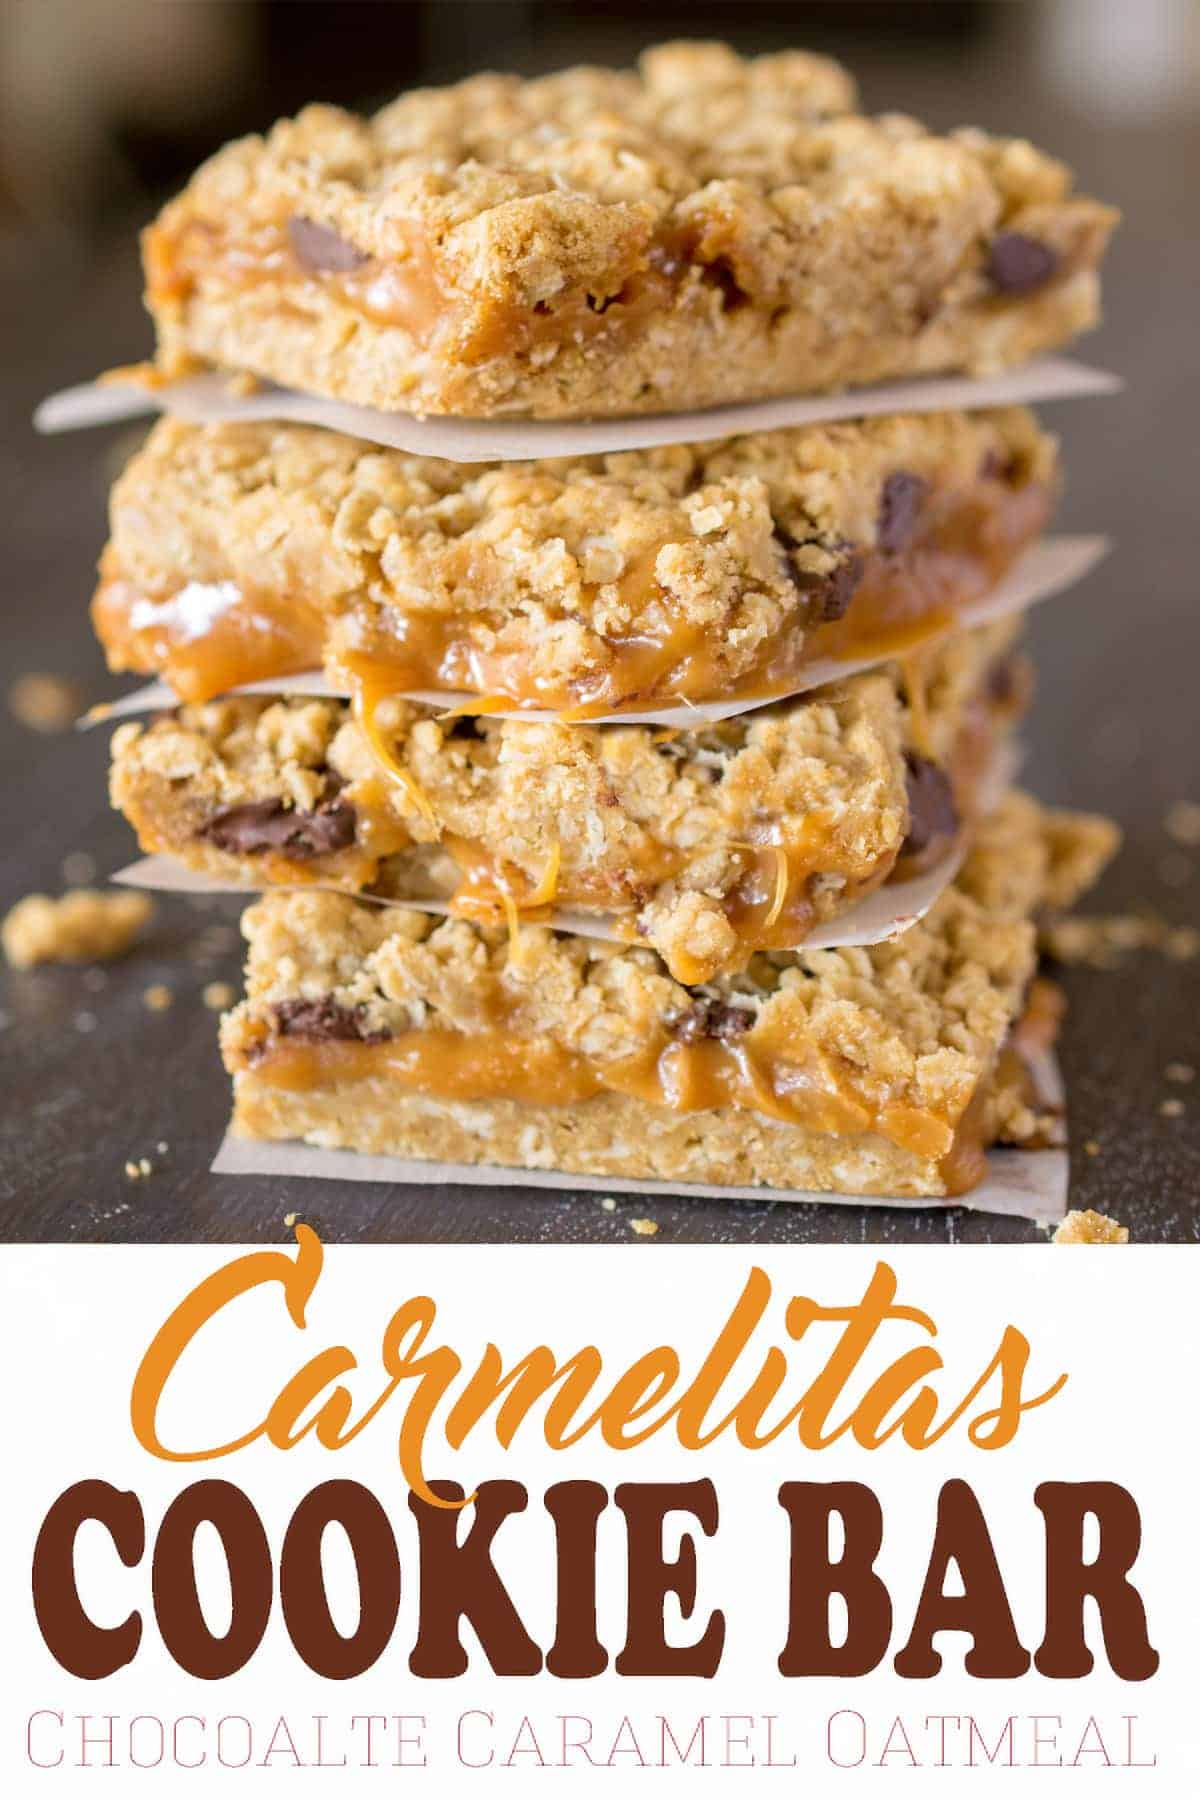 Baked Carmelitas Cookie Bars stacked on wax paper with post title